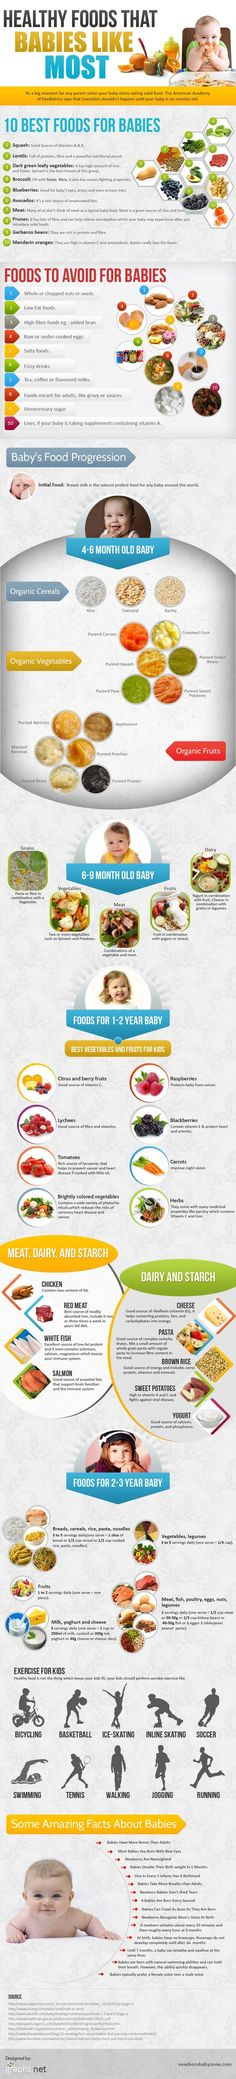 A healthy food guide for babies and toddlers (4 months to 3 years old):